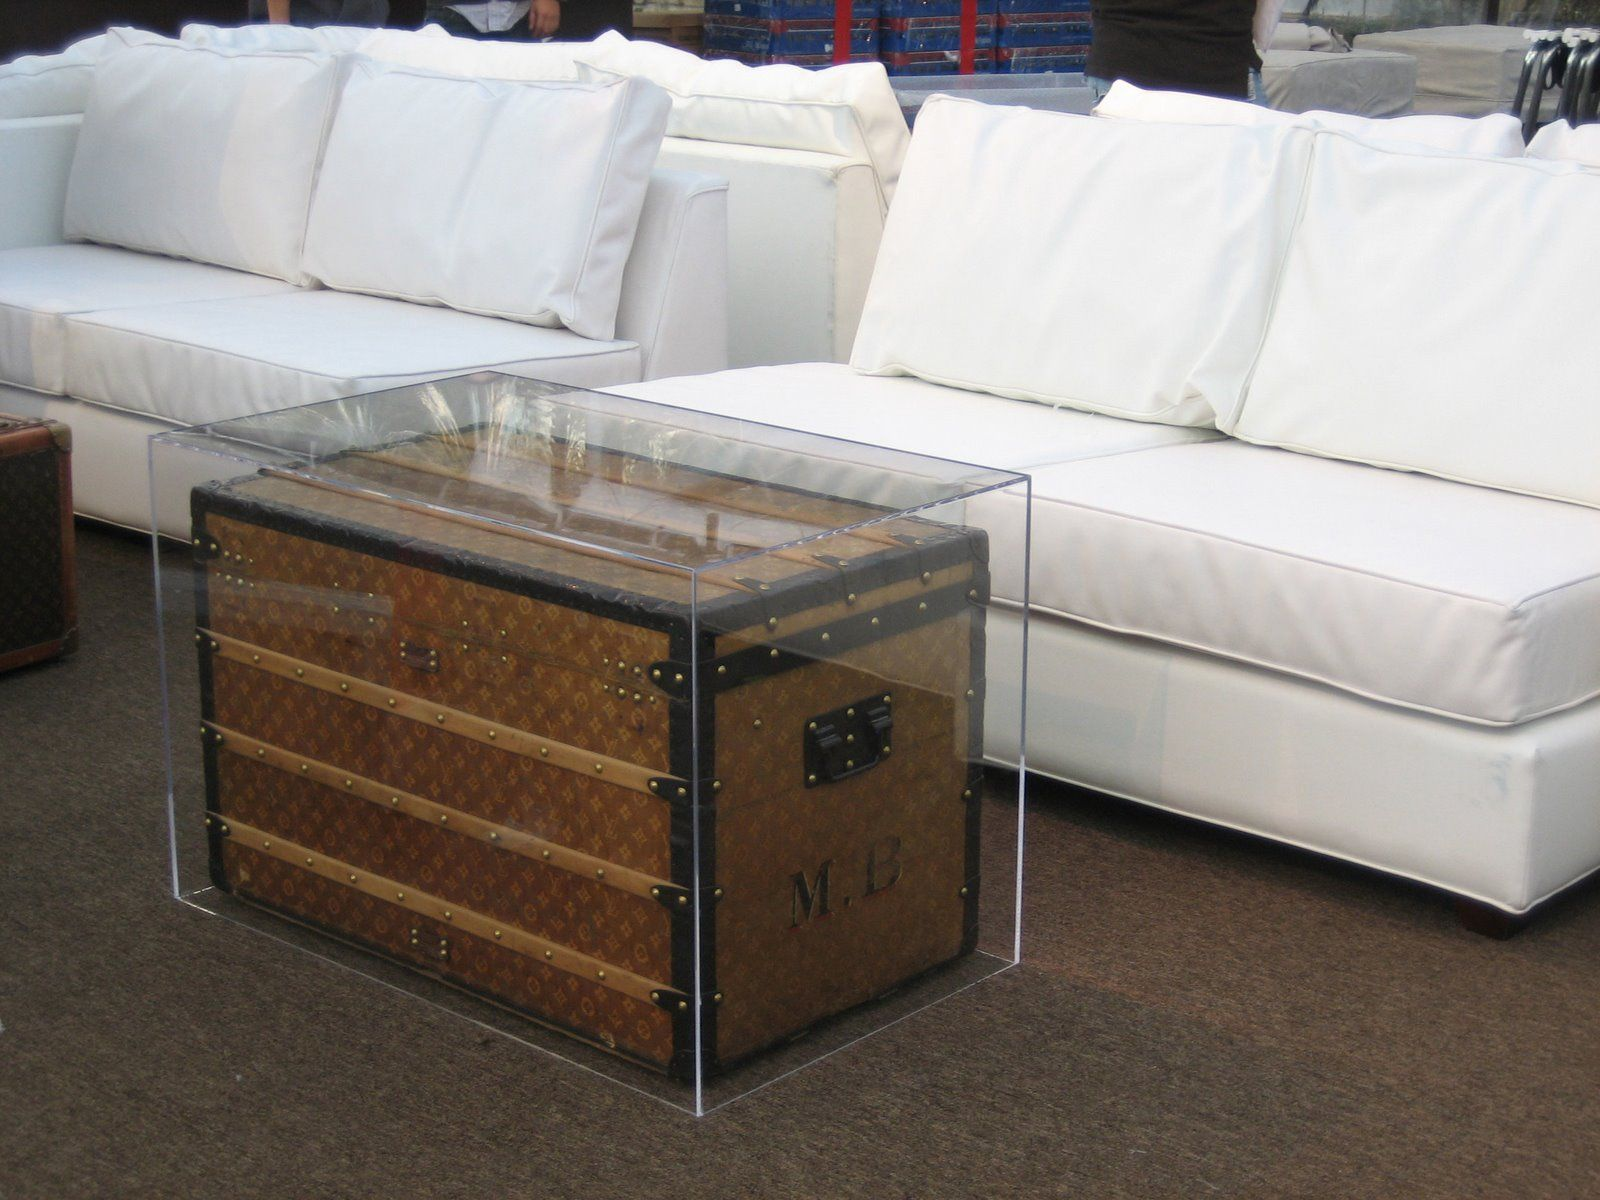 Antique Trunk used as a coffee table Inventive plexiglass cover